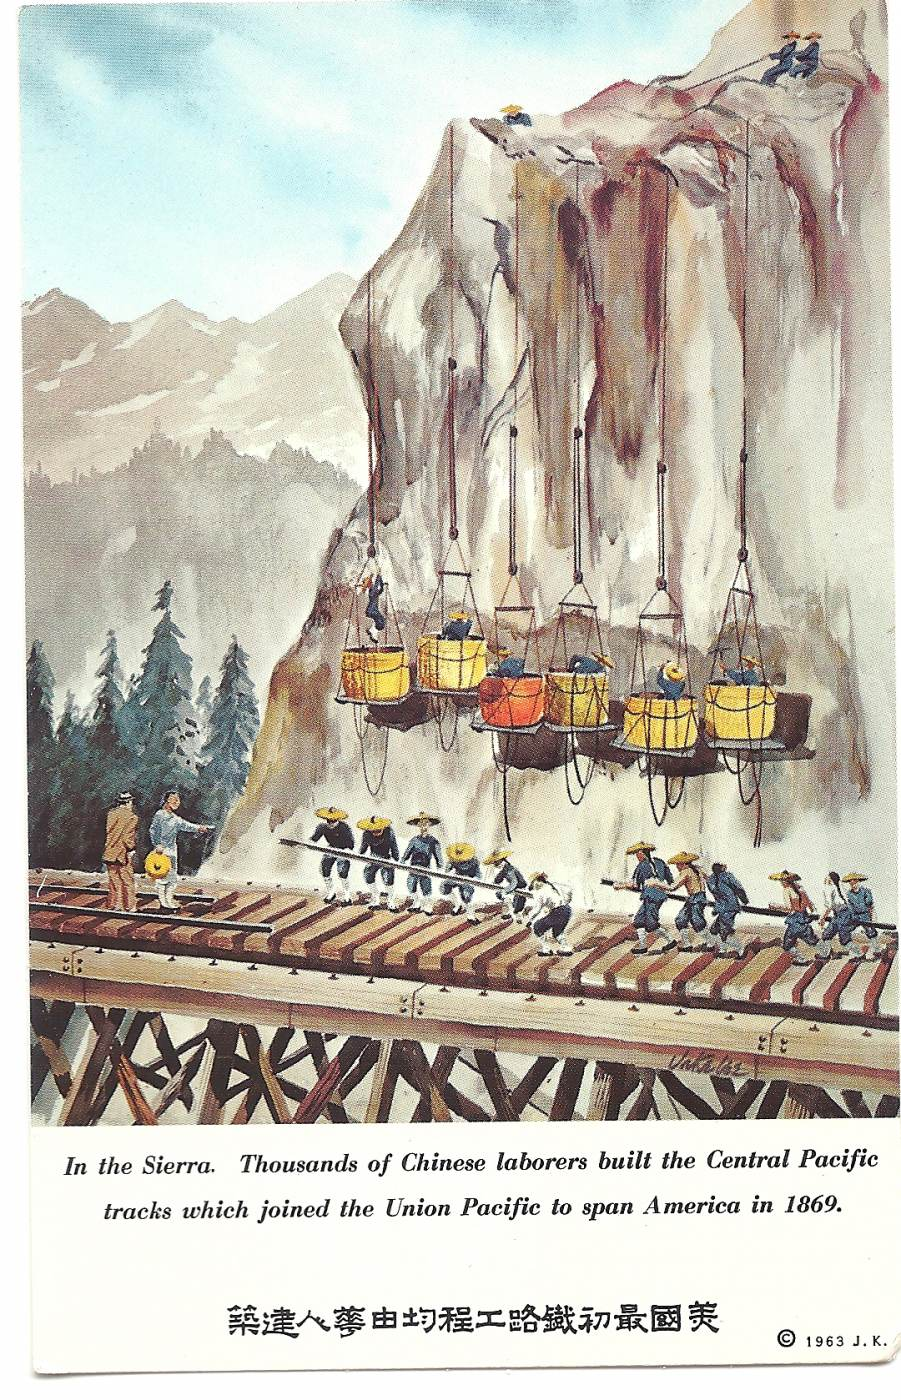 01 April 2019 Posted. Postcard of Chinese laborers building the Central Pacific Railroad in the mid-1800s. Courtesy of Alex Jay, Museum of Chinese in America (MOCA) Collection. 19世纪80年代中期华人劳工修建美国中央太平洋铁路明信片Alex Jay捐赠,美国华人博物馆(MOCA)馆藏